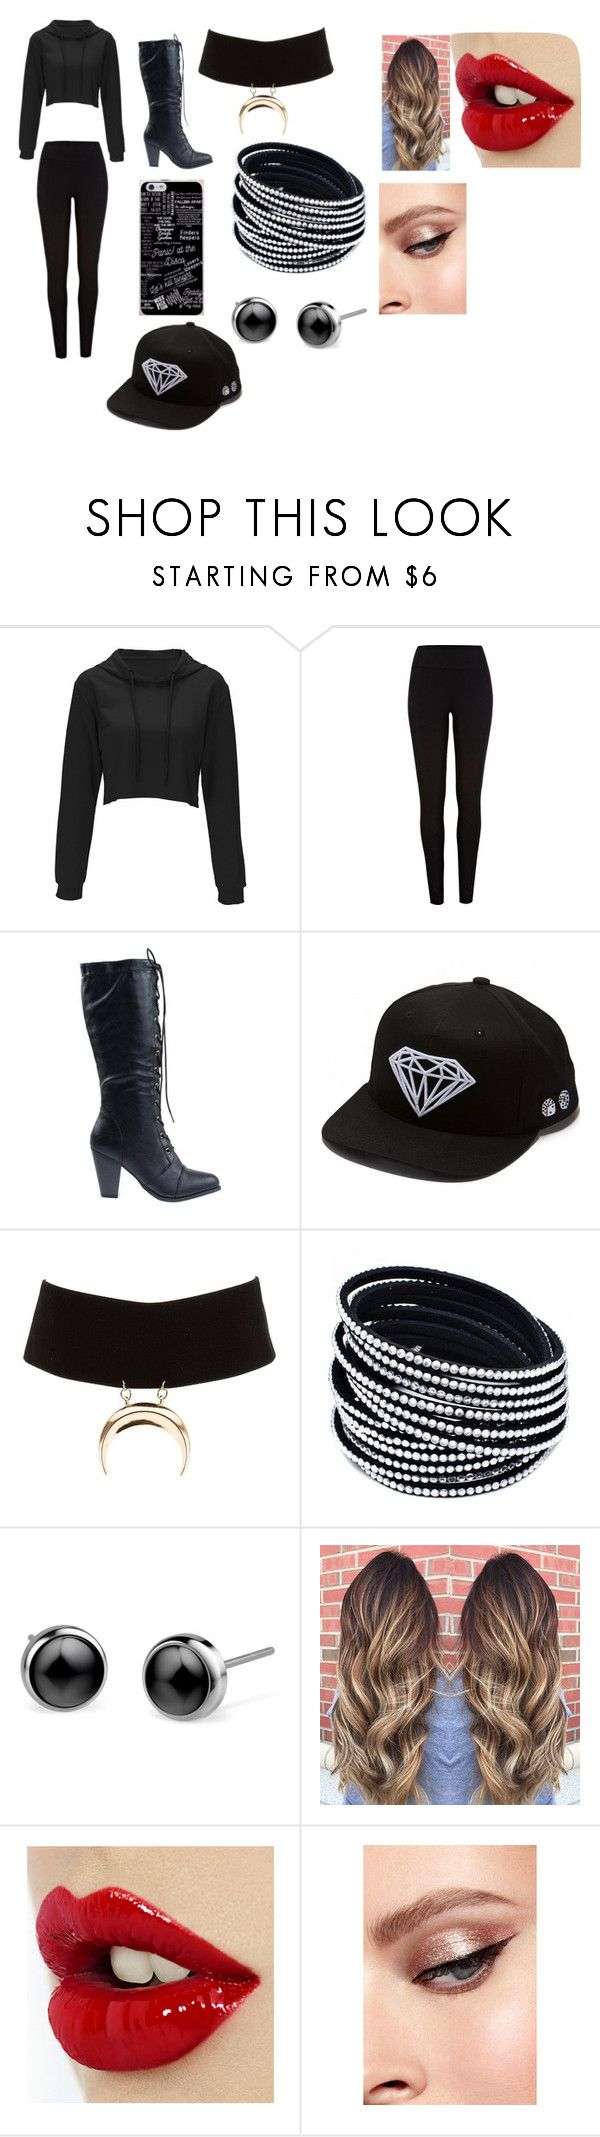 """Glmor"" by ealtscheffel ❤ liked on Polyvore featuring River Island, Forever Link, Diamond Supply Co. and Charlotte Russe"